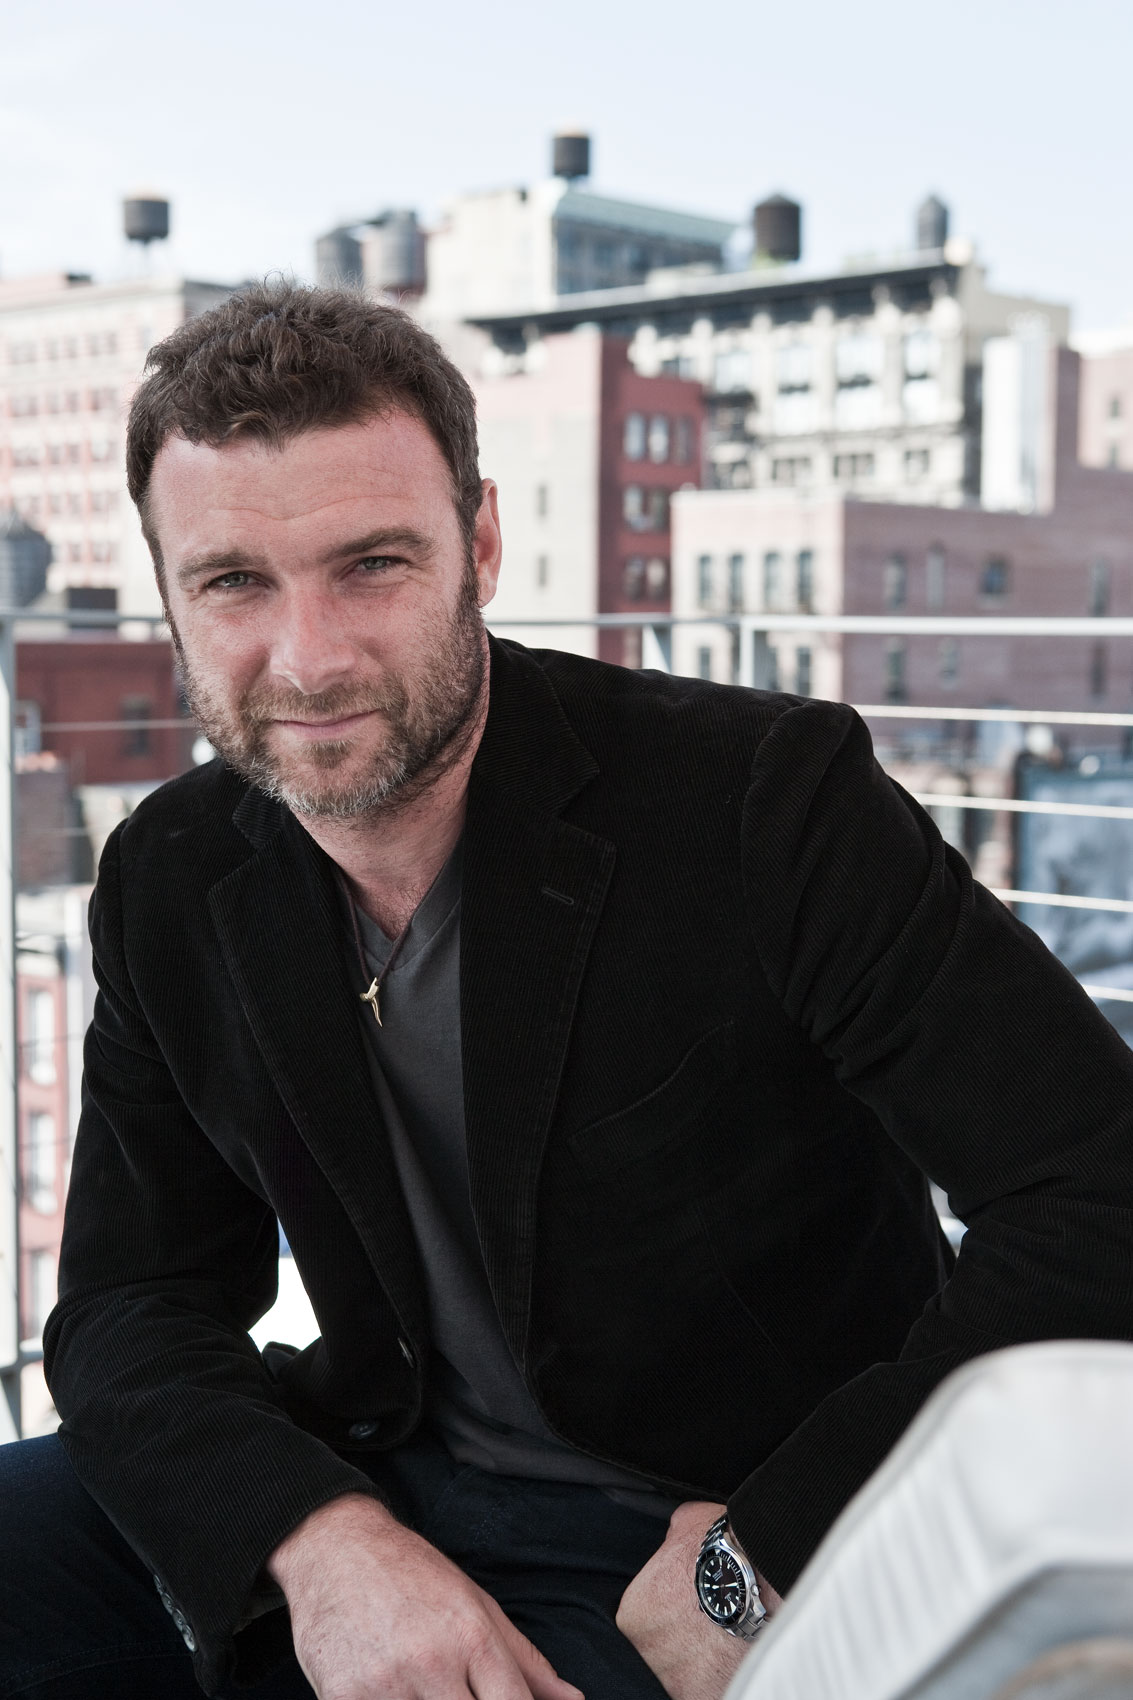 Portrait of the actor Liev Schreiber at home by New York Photographer, Michael Weschler.